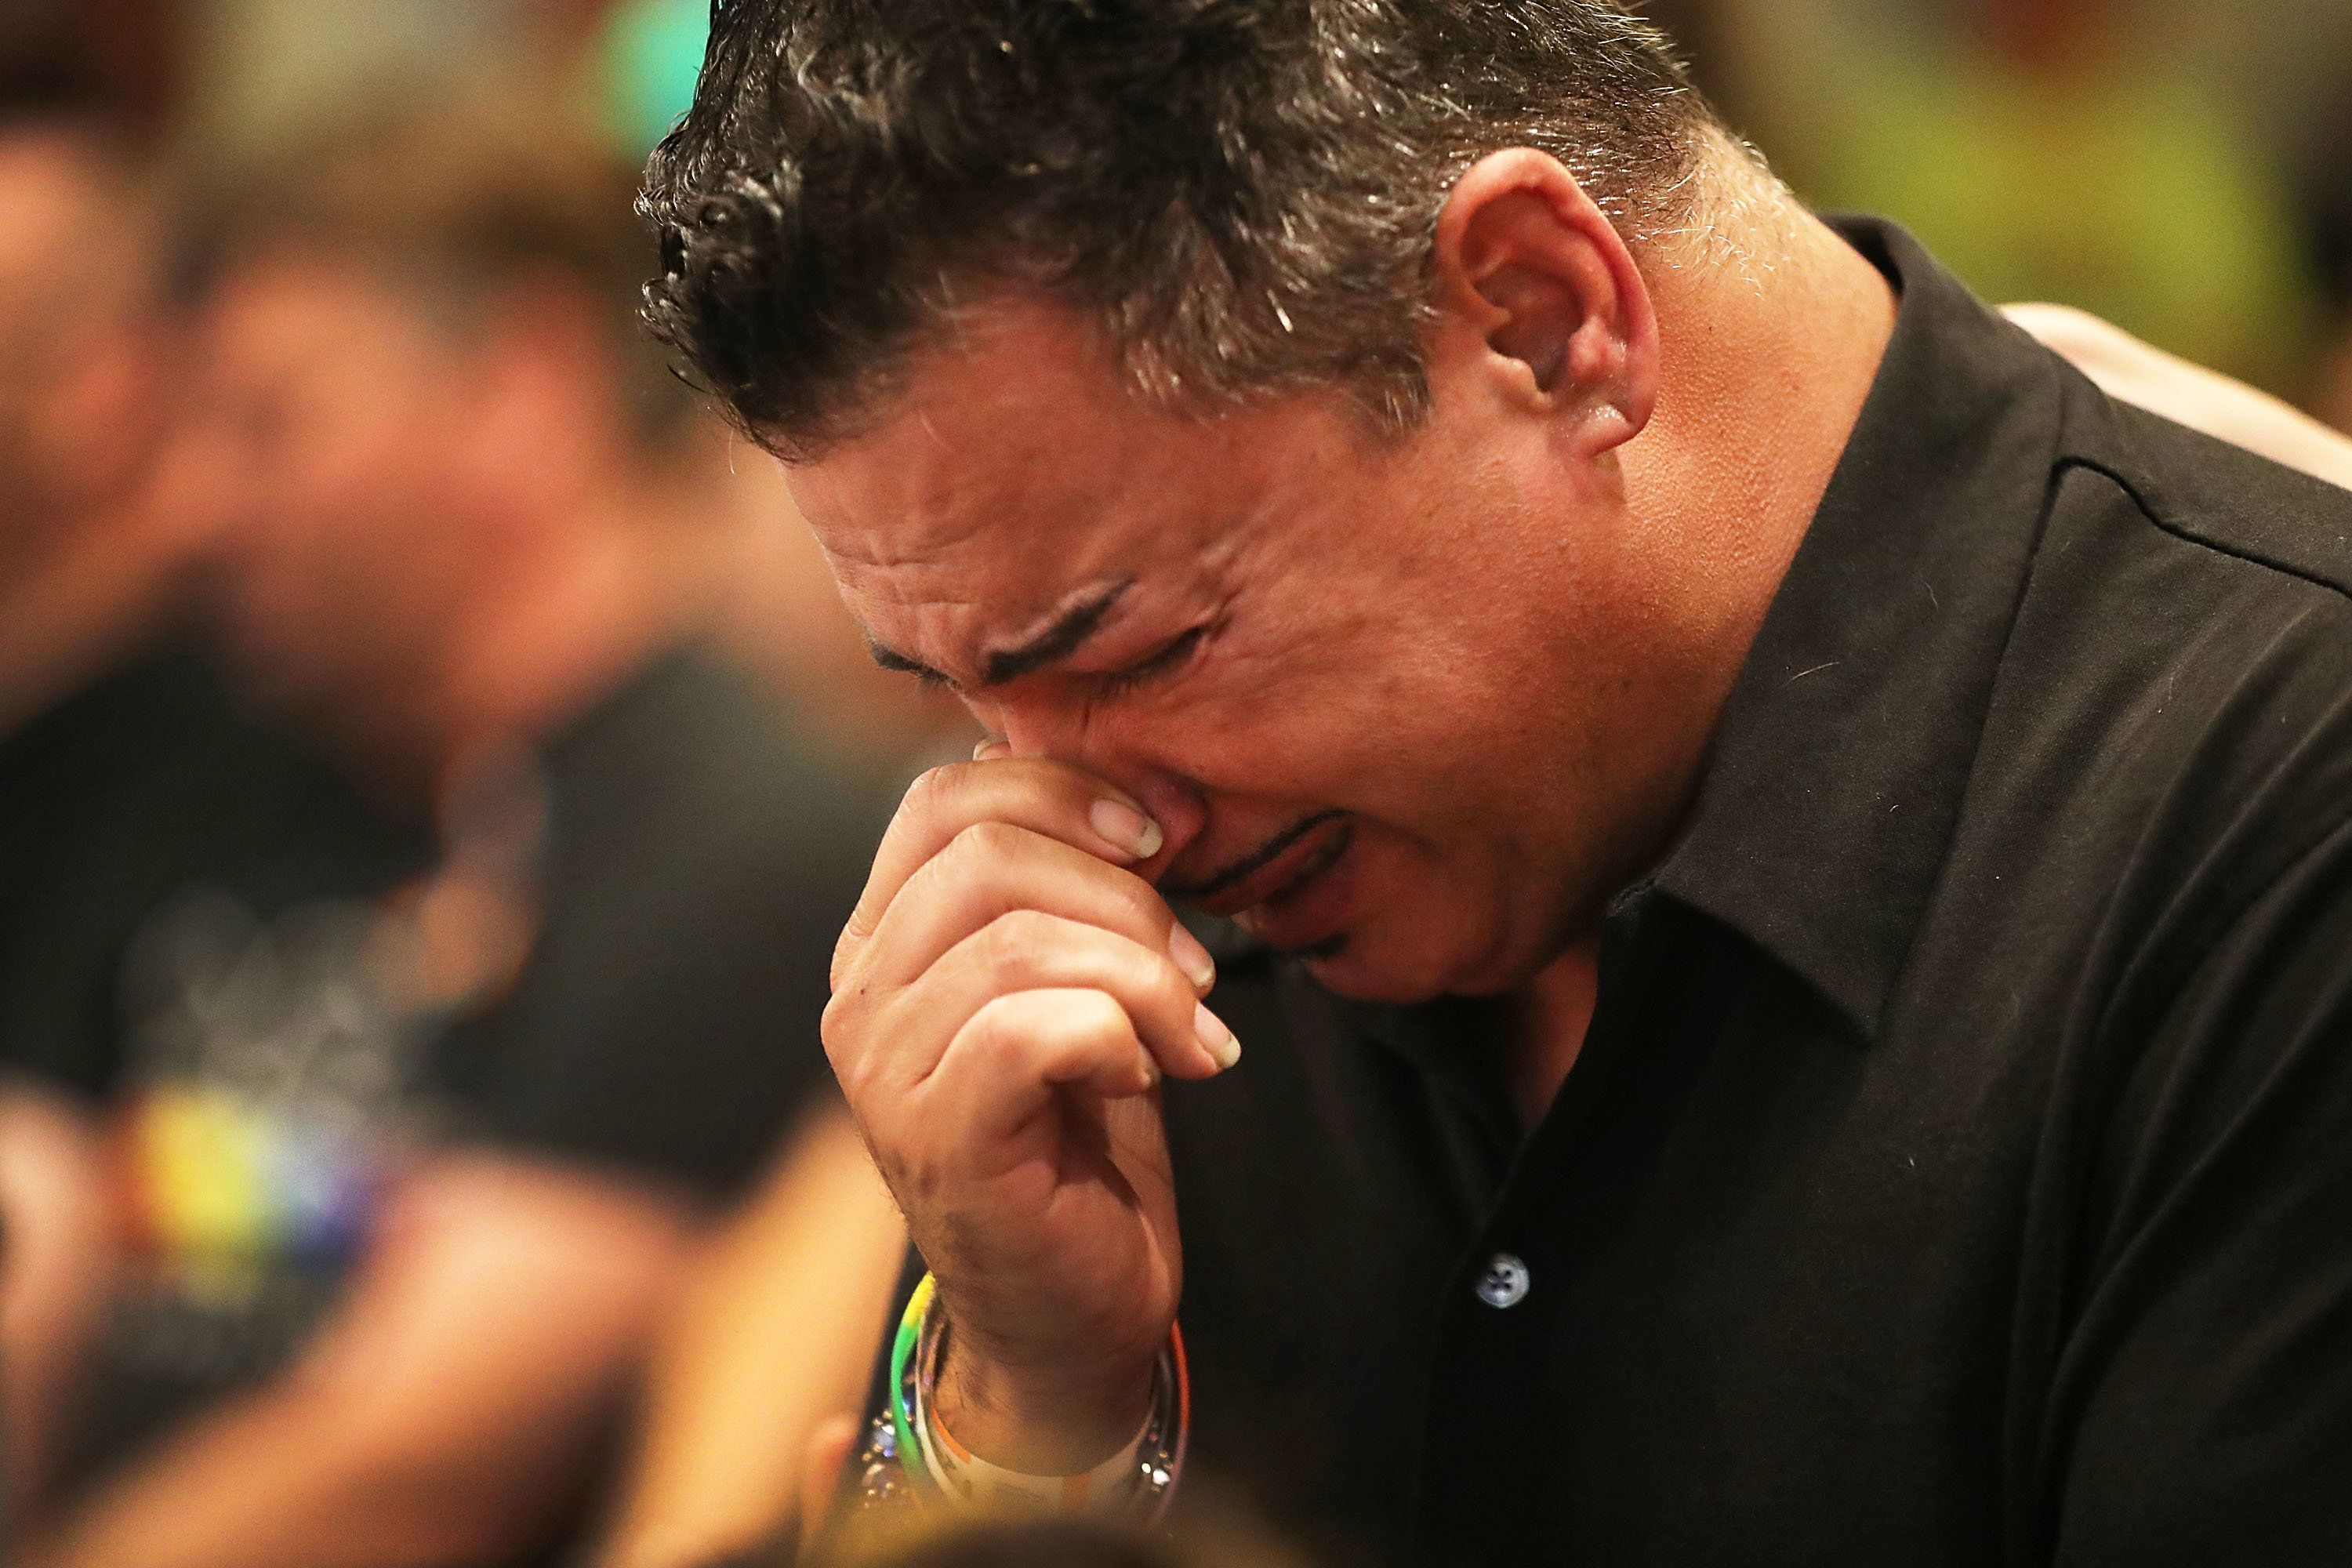 A manwho was injured in the mass shooting at Pulse nightclub cries as he attends a memorial service at the Joy Metropol